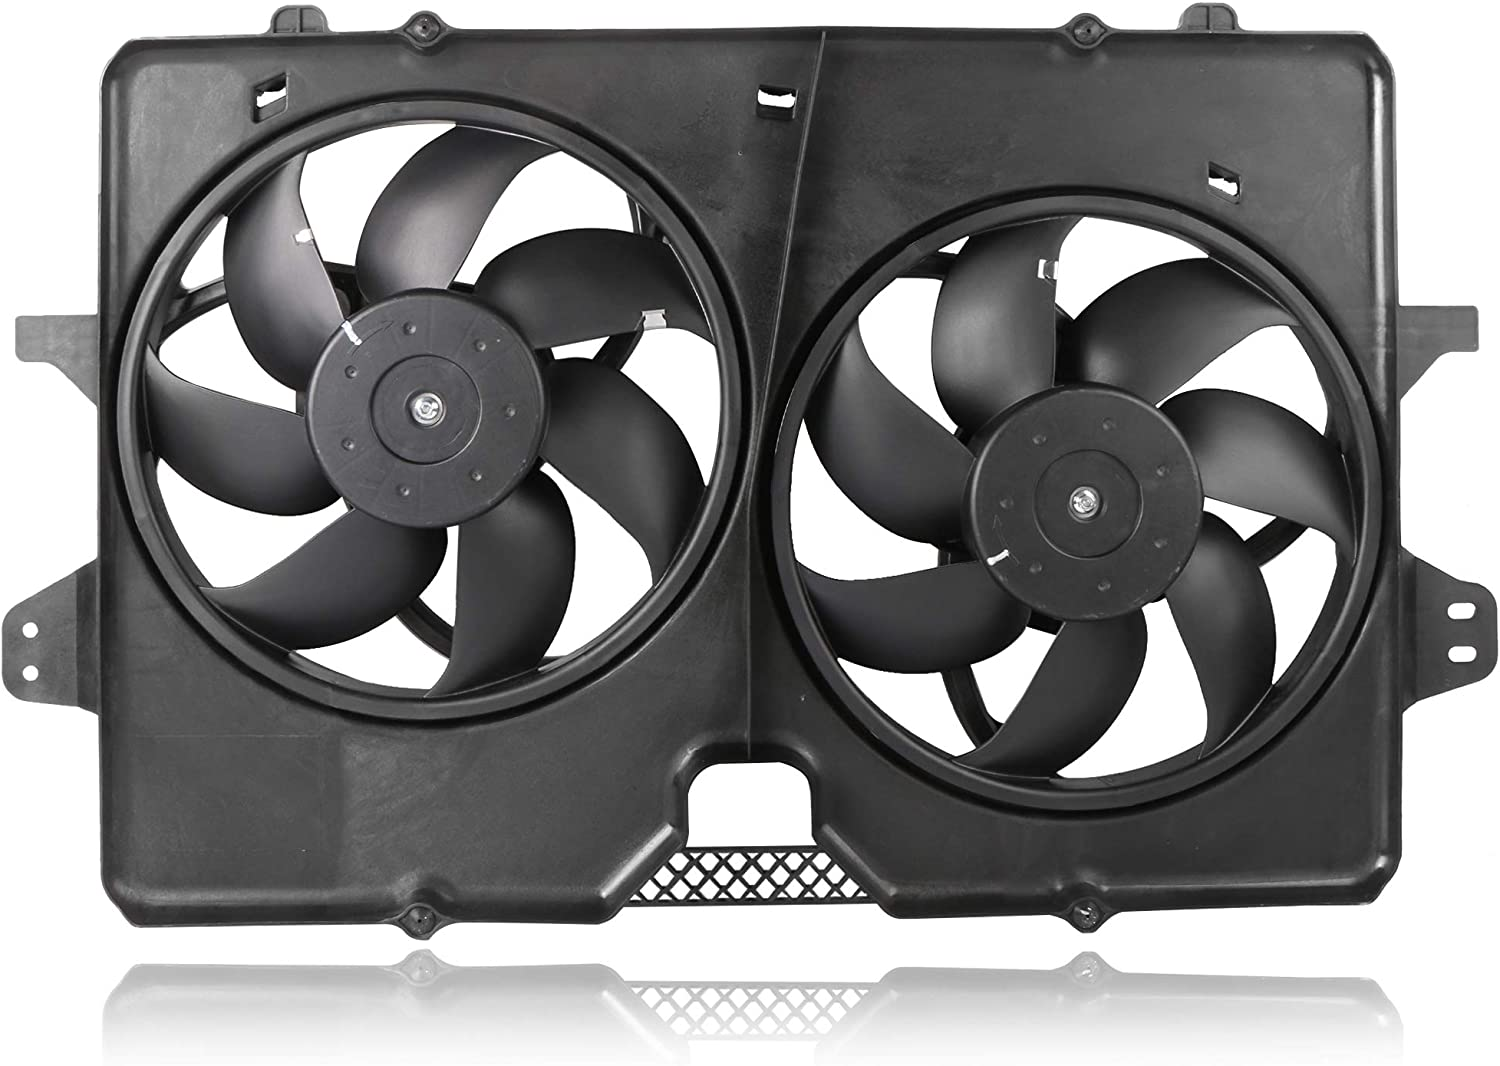 MOSTPLUS Dual Black Radiator Cooling Fan Assembly ZZC415025 for Ford Escape/Mazda Tribute/Mercury Mariner 3.0L 2008-2011